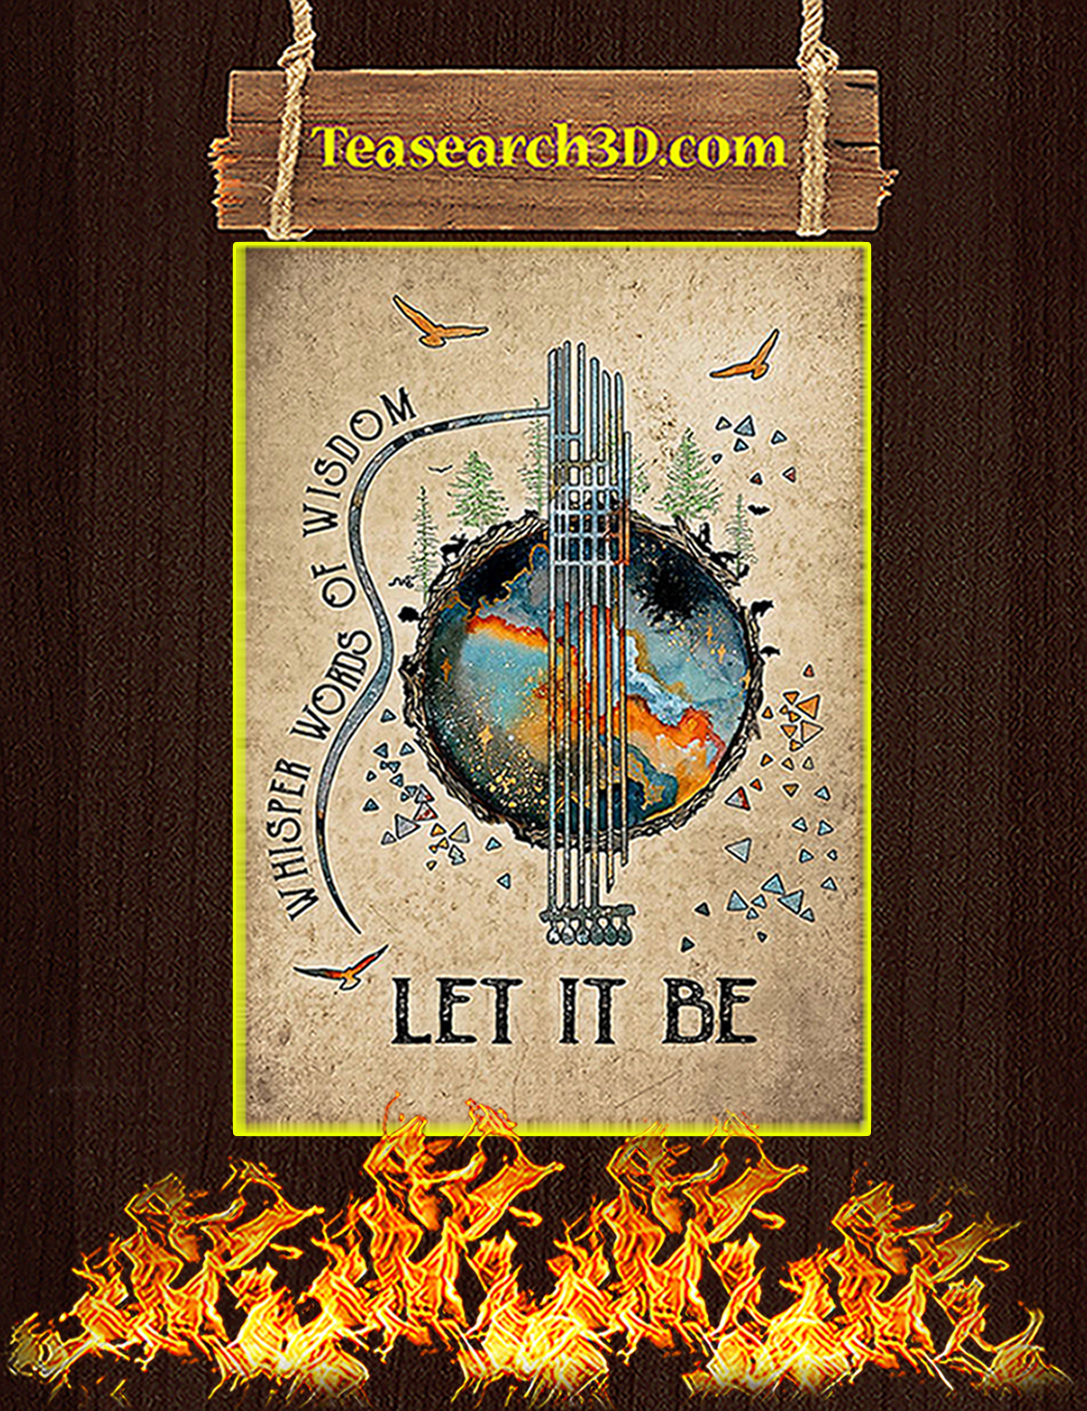 Whisper words of wisdom let it be earth poster A2